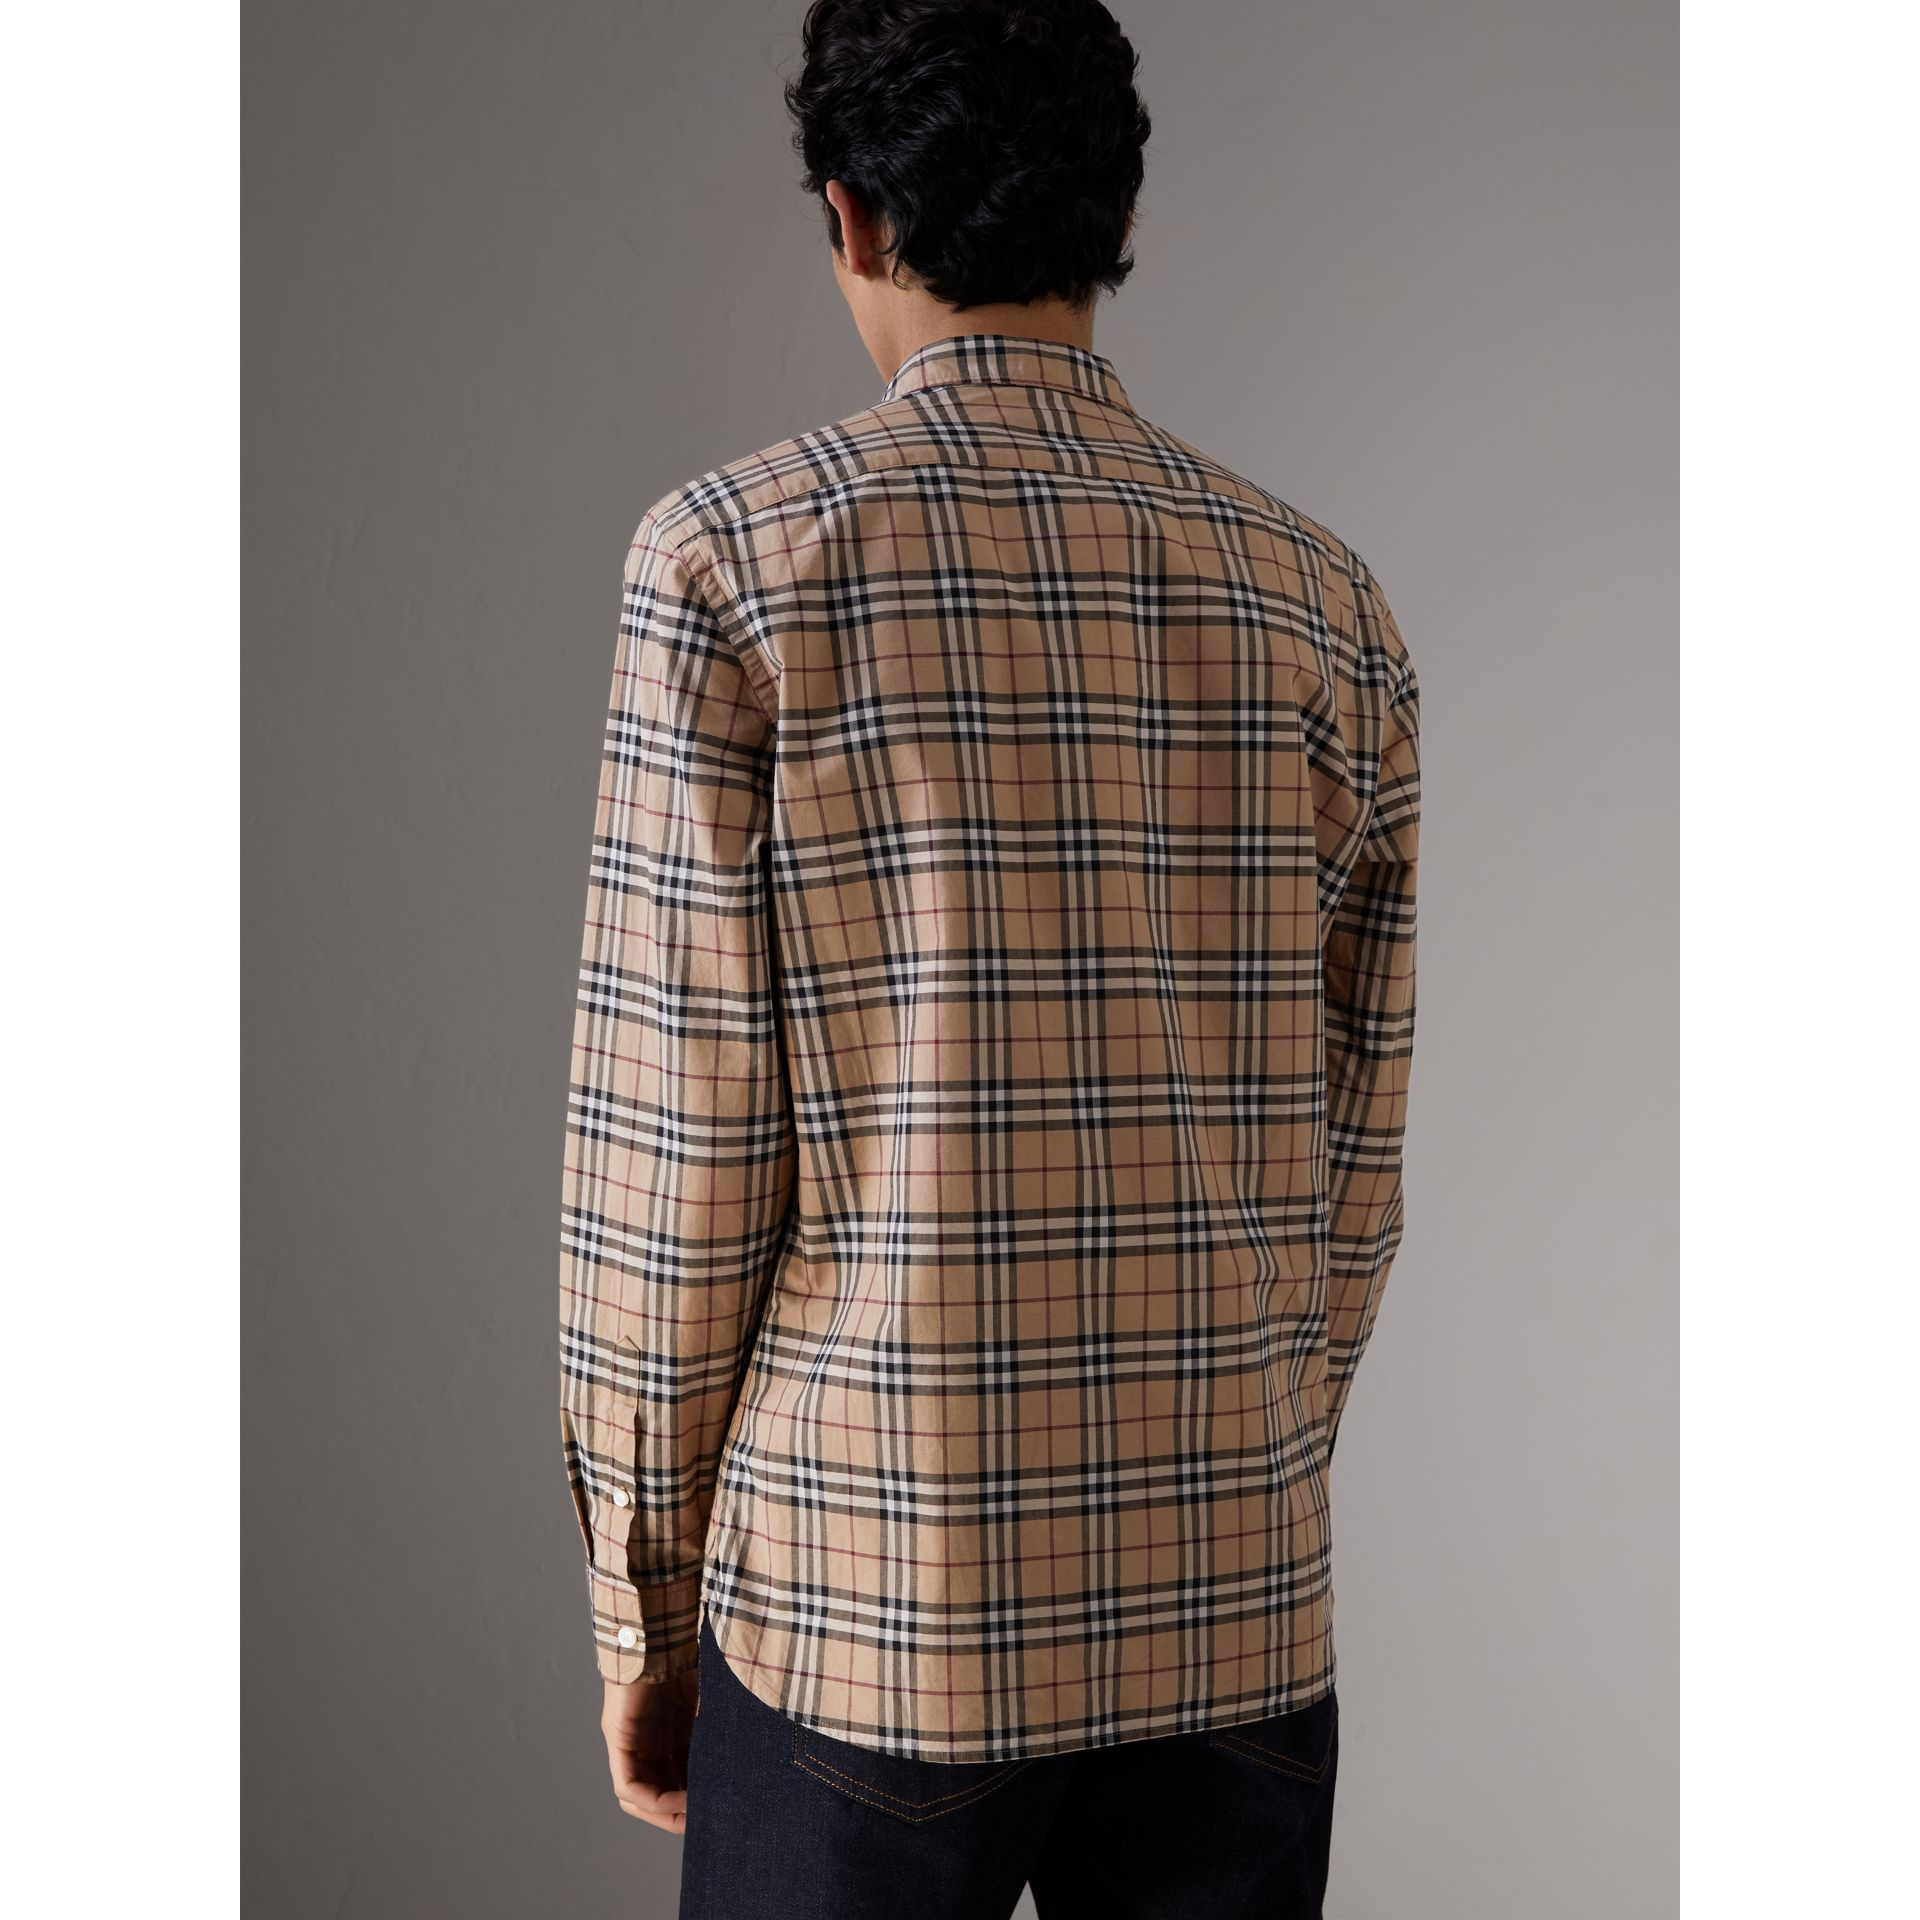 Check Cotton Shirt in Camel - Men | Burberry Canada - gallery image 2